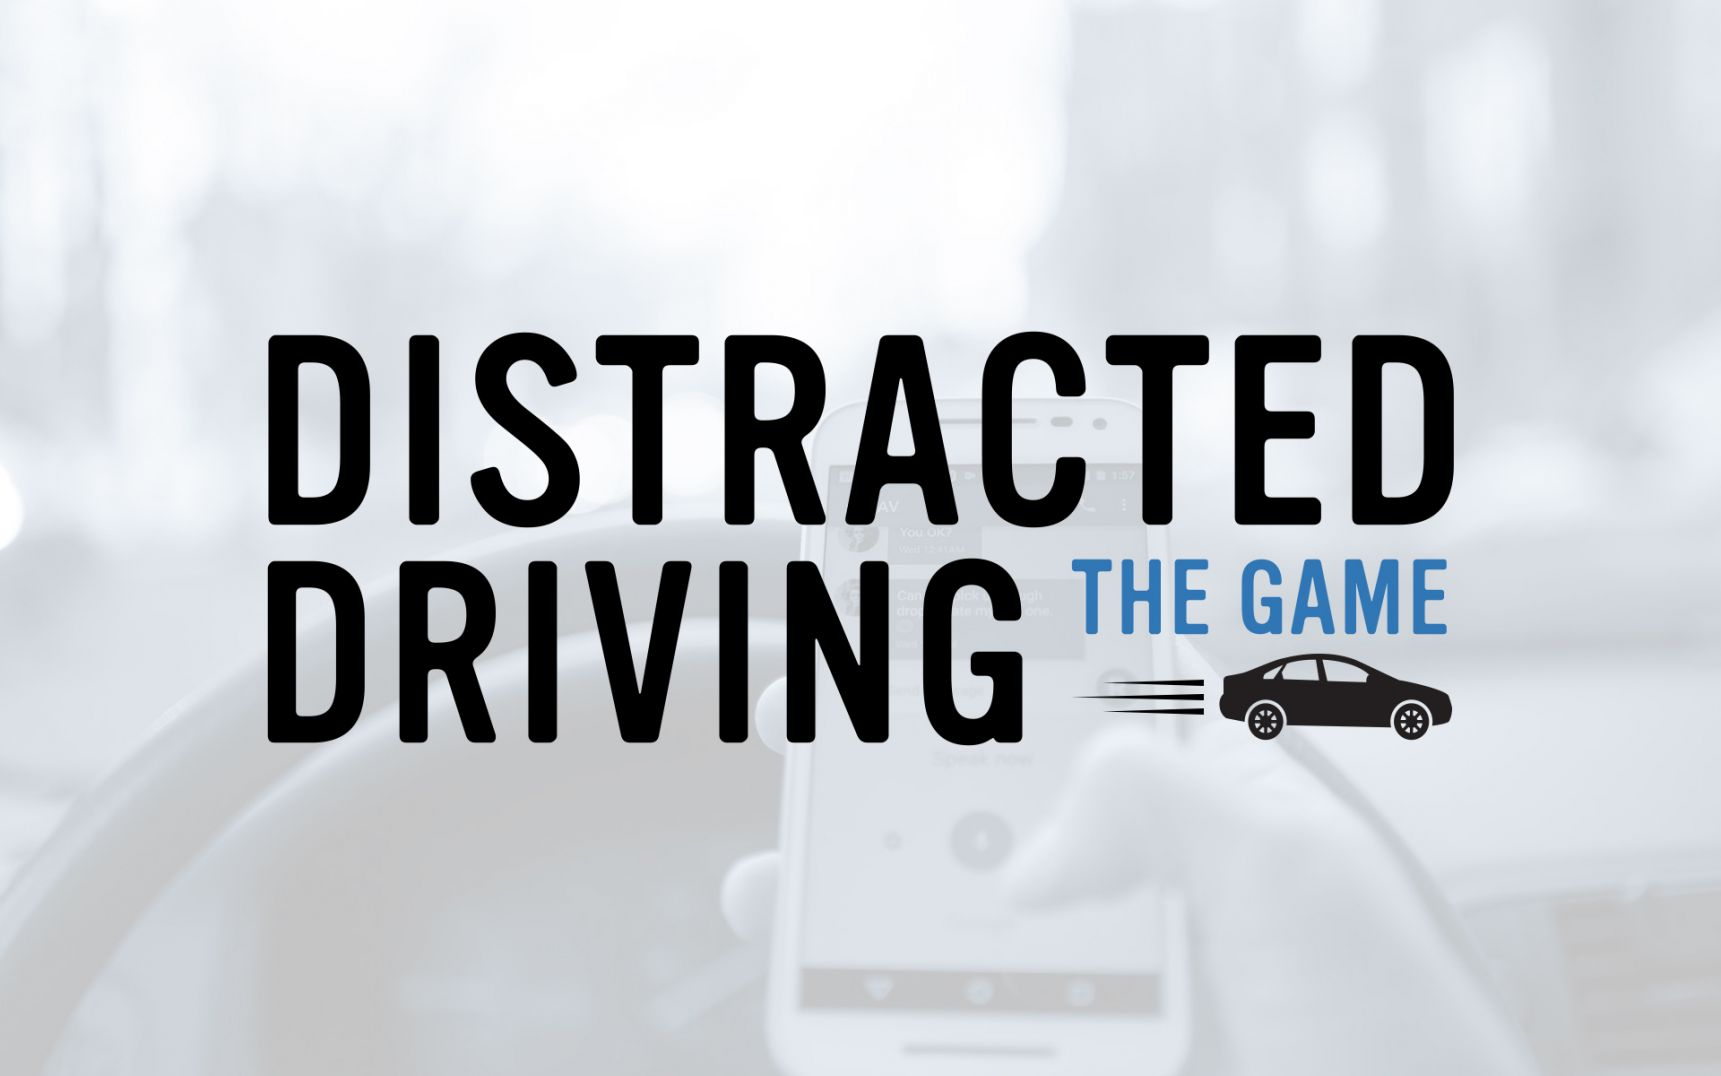 distracted-driving-game